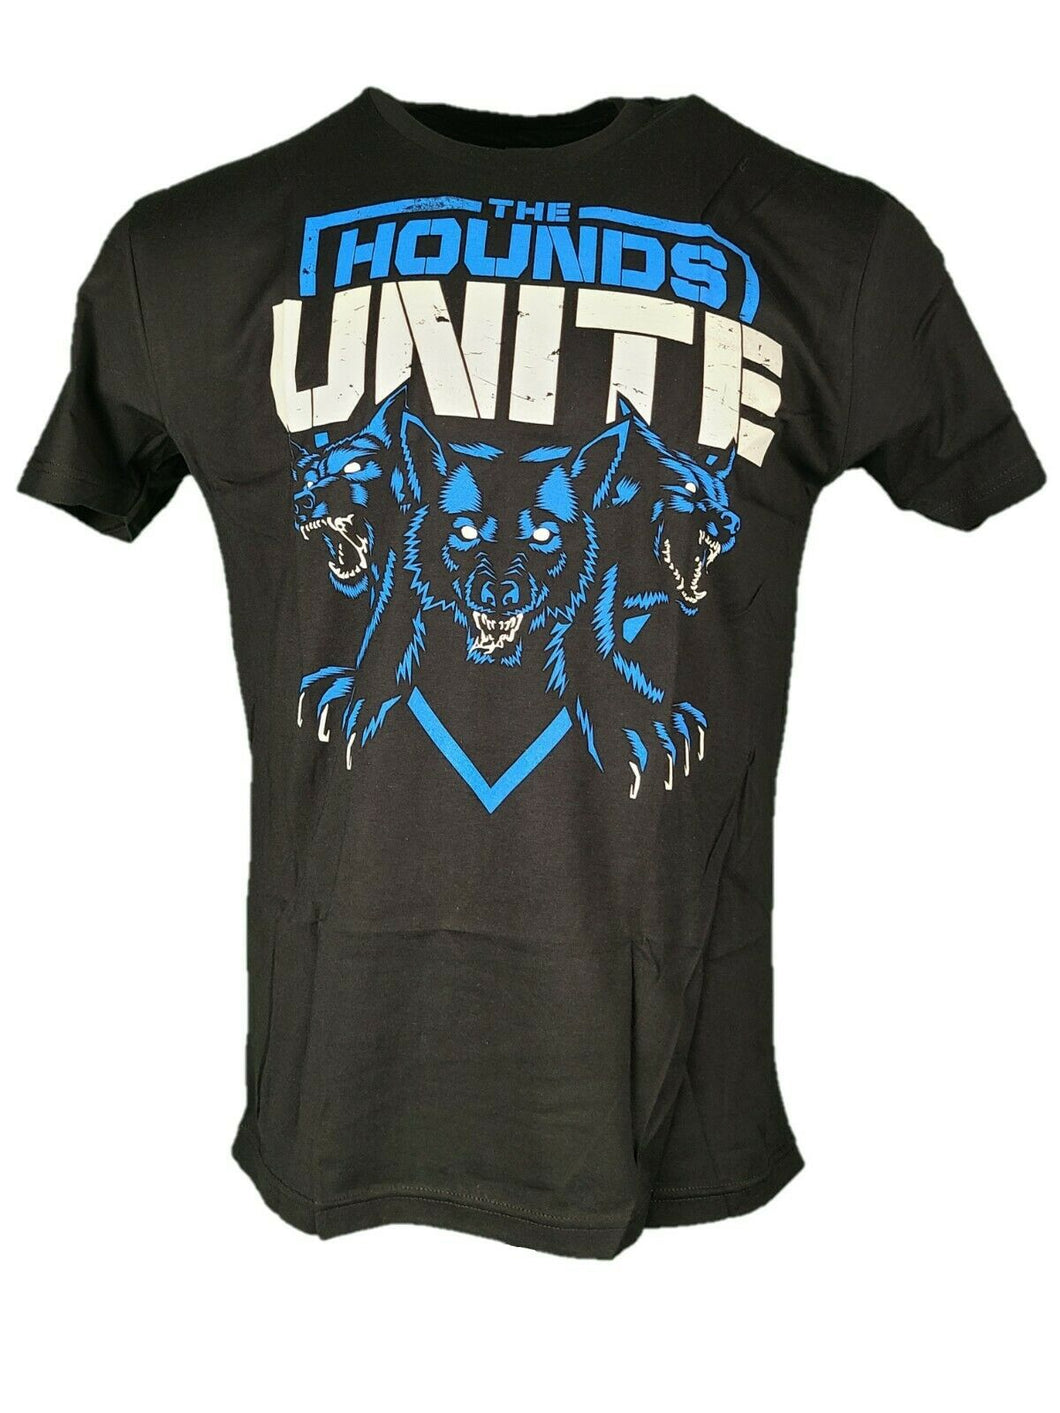 The Shield Hounds Unite WWE Authentic Mens Black T-shirt New Size Large